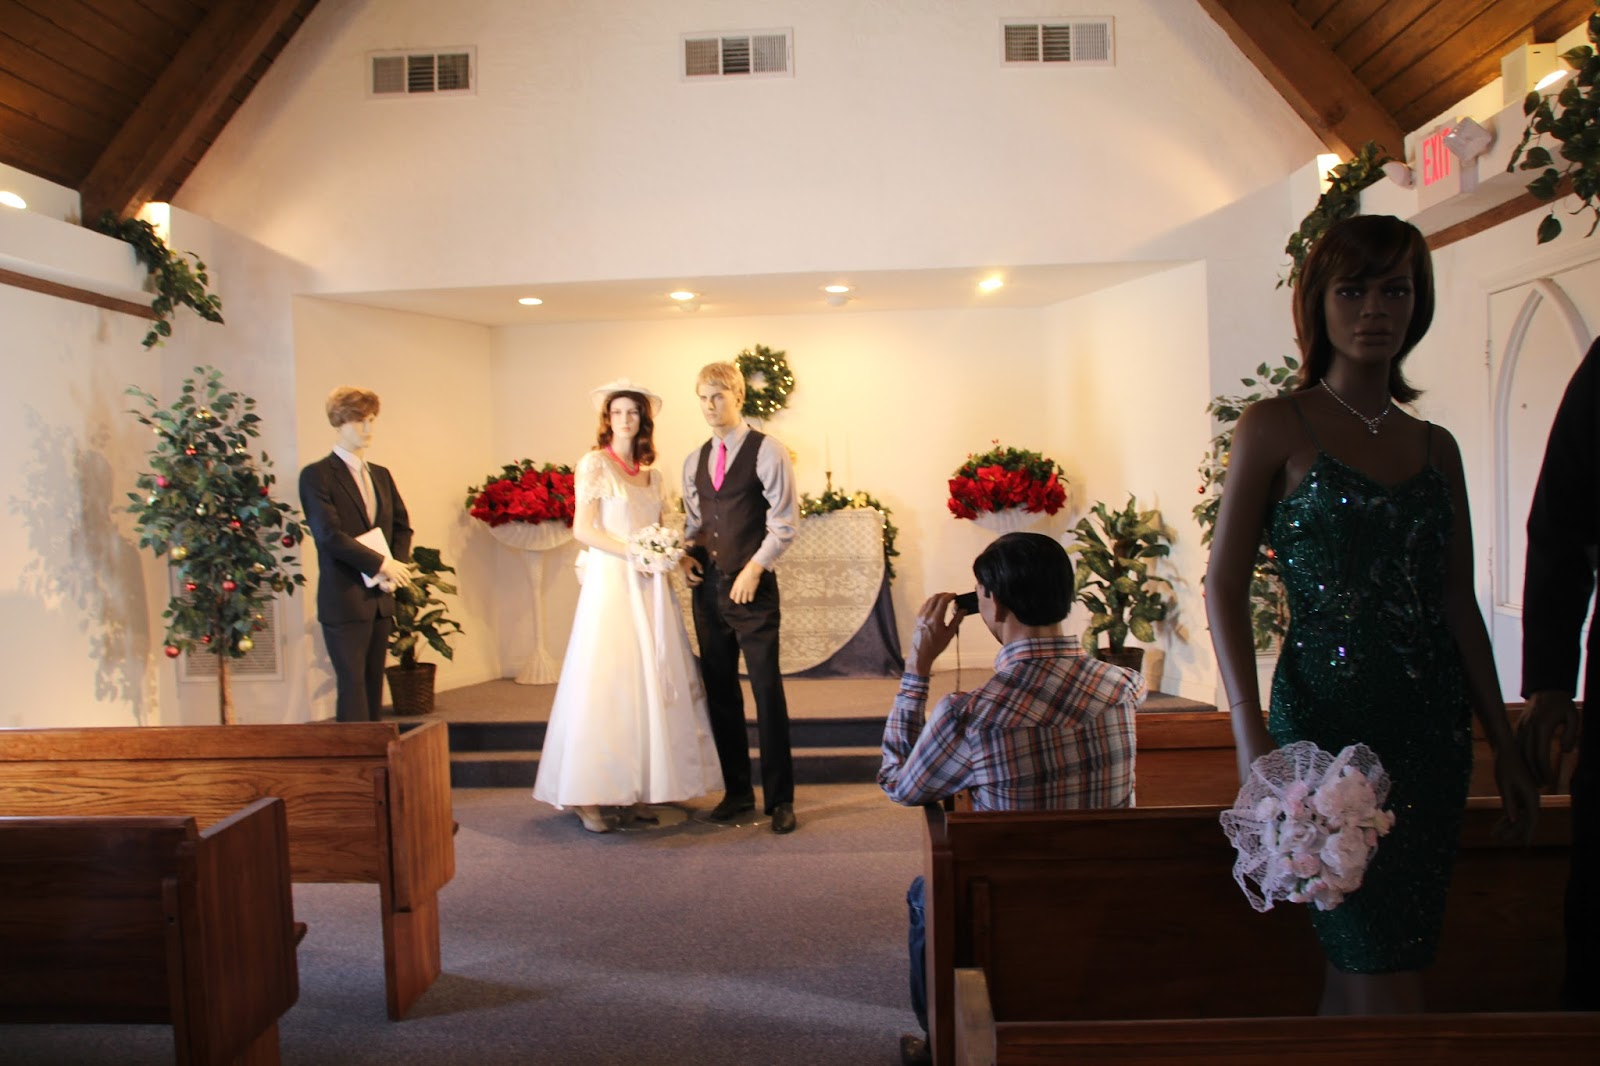 That S Pretty Much How It Unfolded For The Candlelight Wedding Chapel A Quaint Free Standing Churchlike Structure With Steep Roof Lines Sat Four